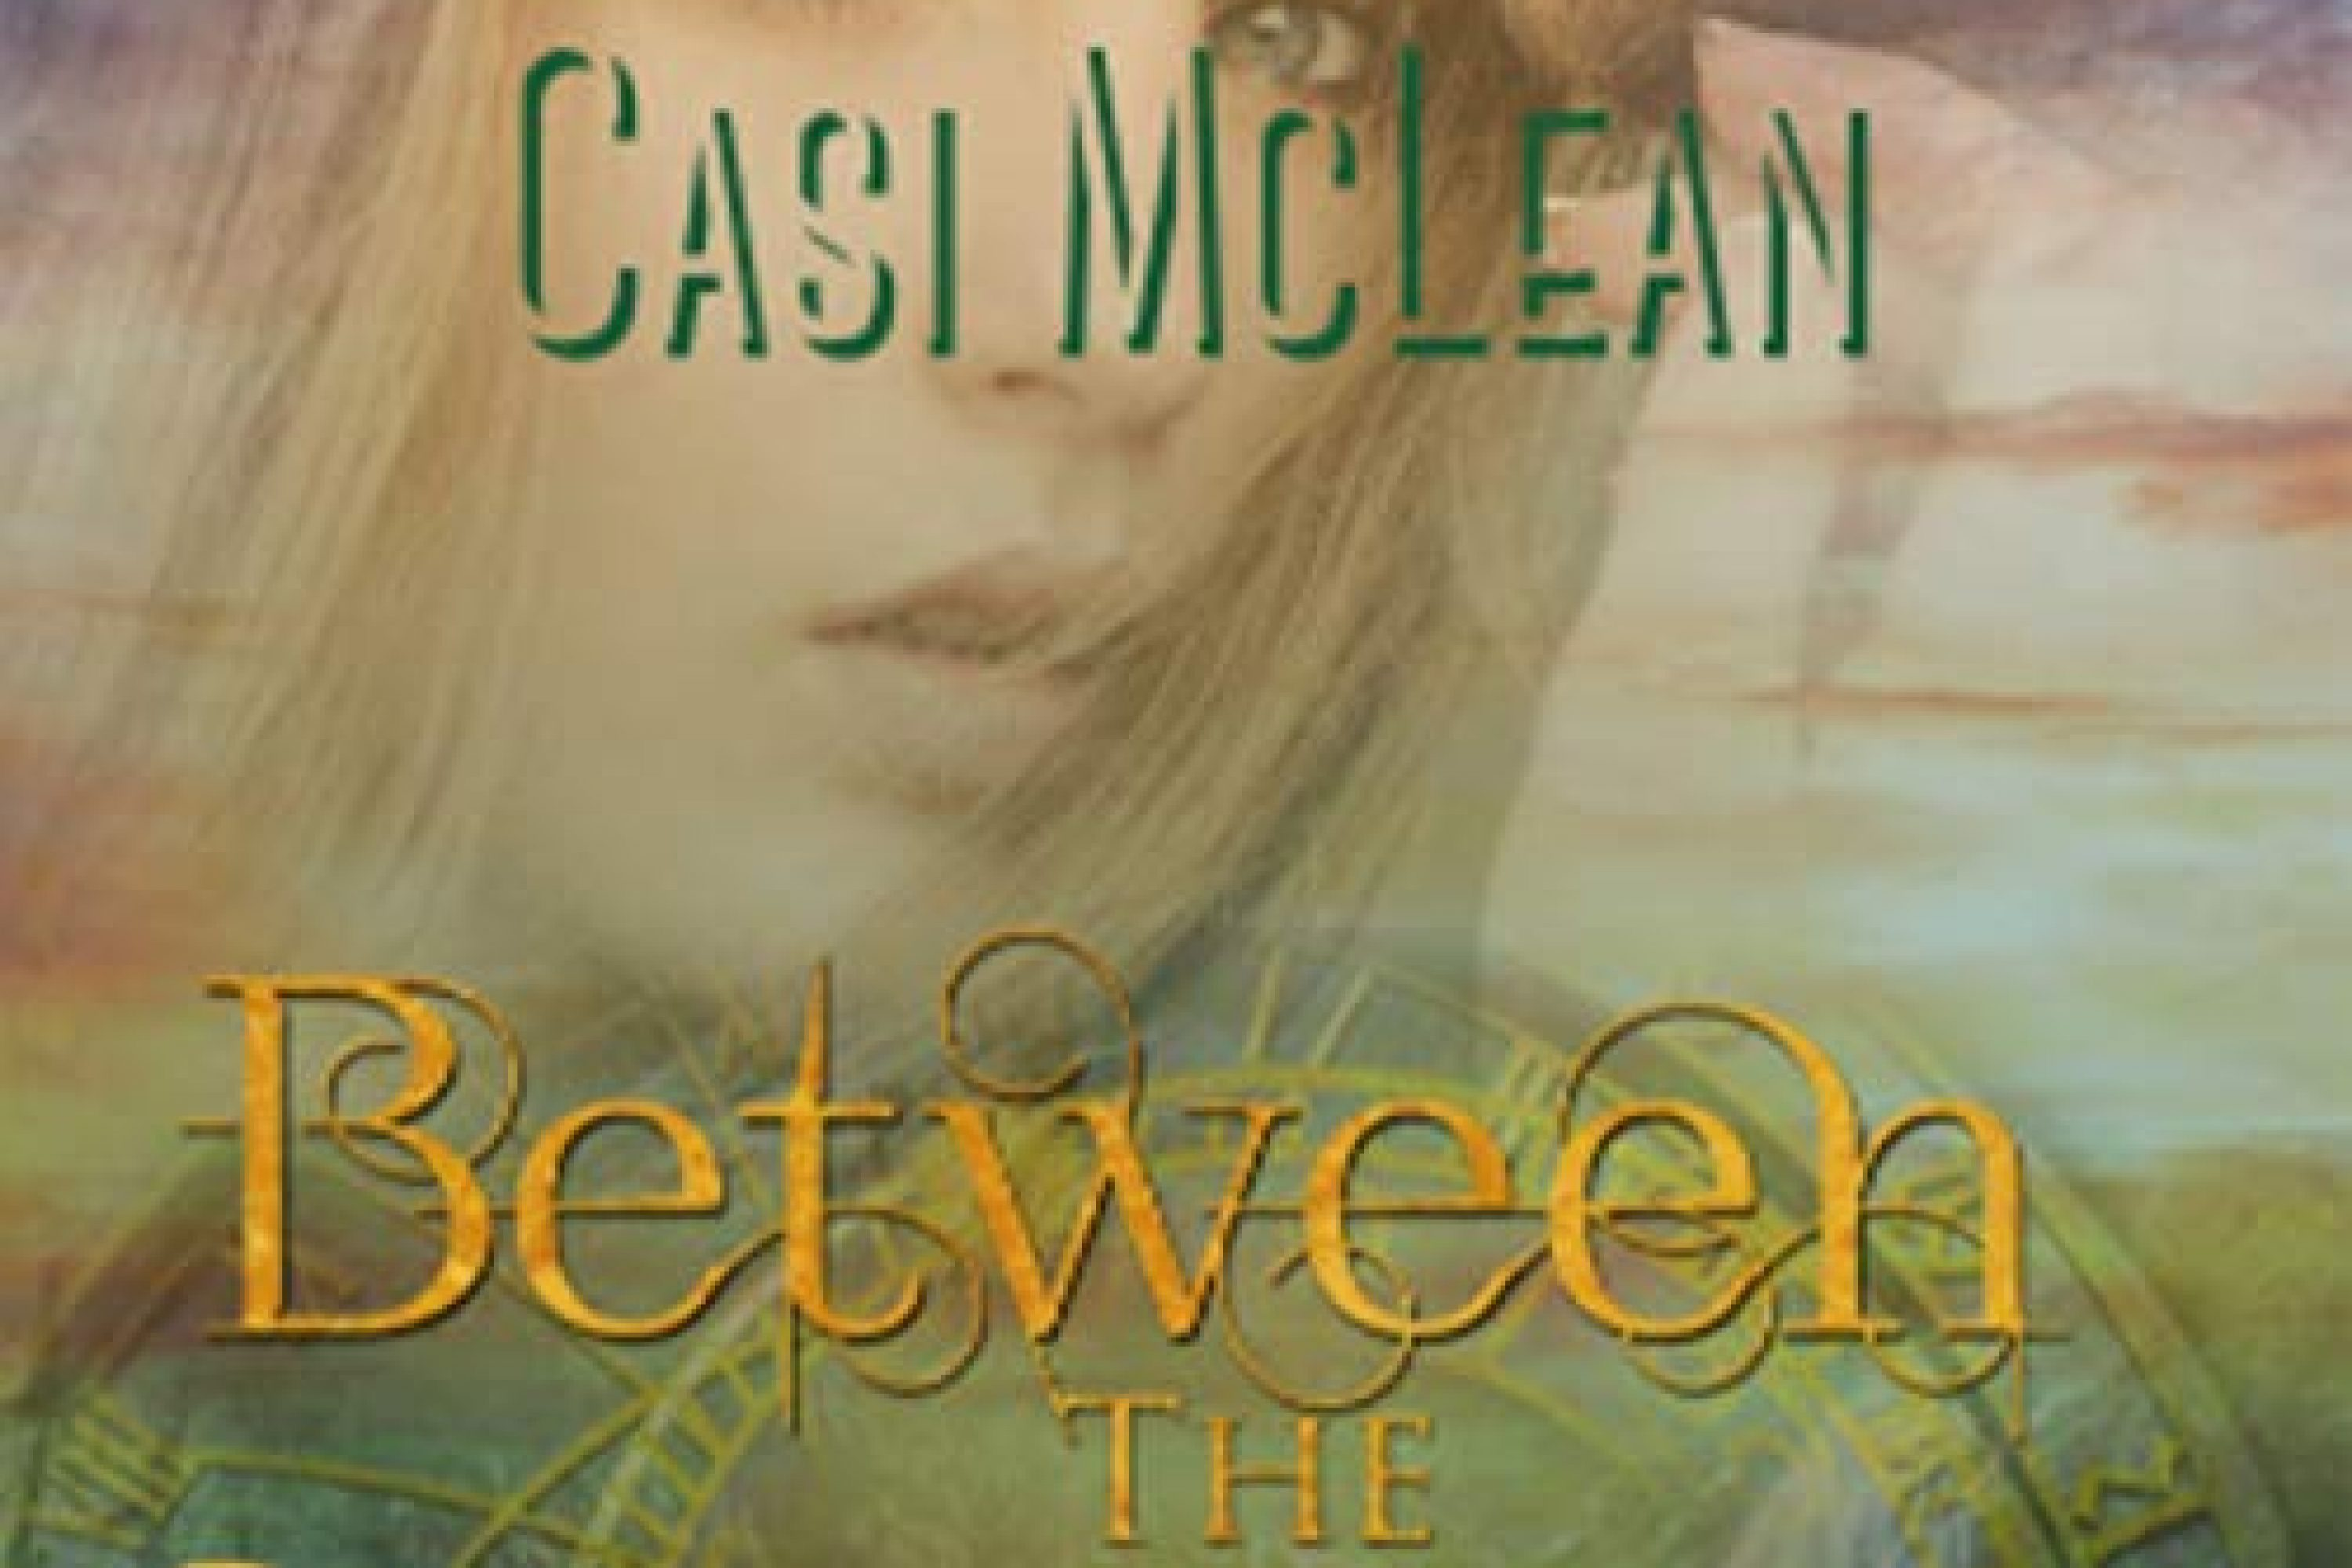 Audiobook Review: Between the Shadows by Casi McLean